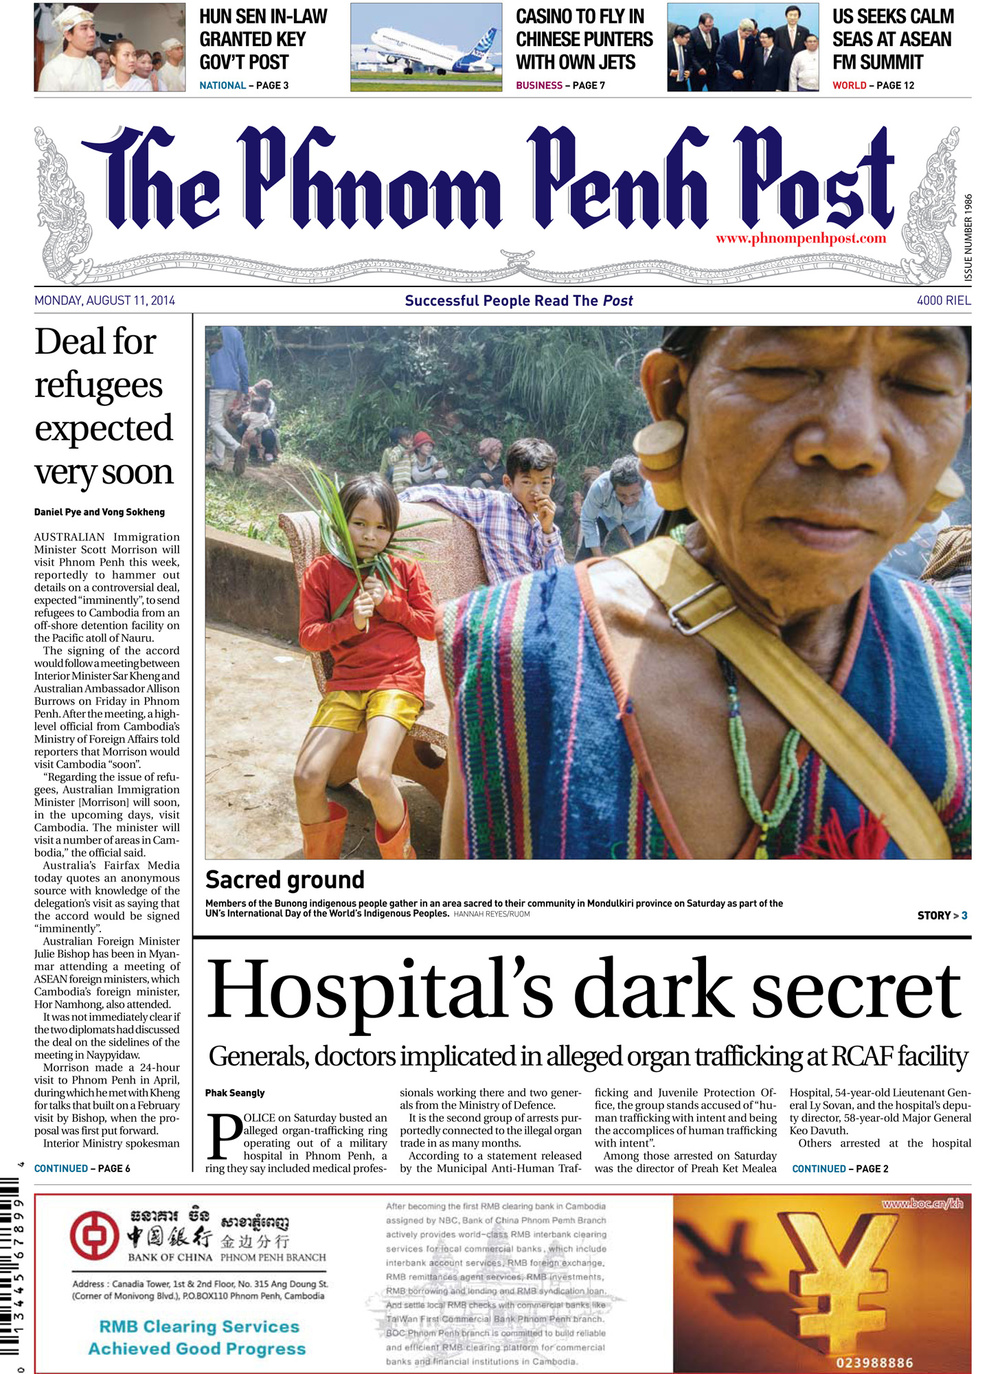 Phnom Penh Post Front Page